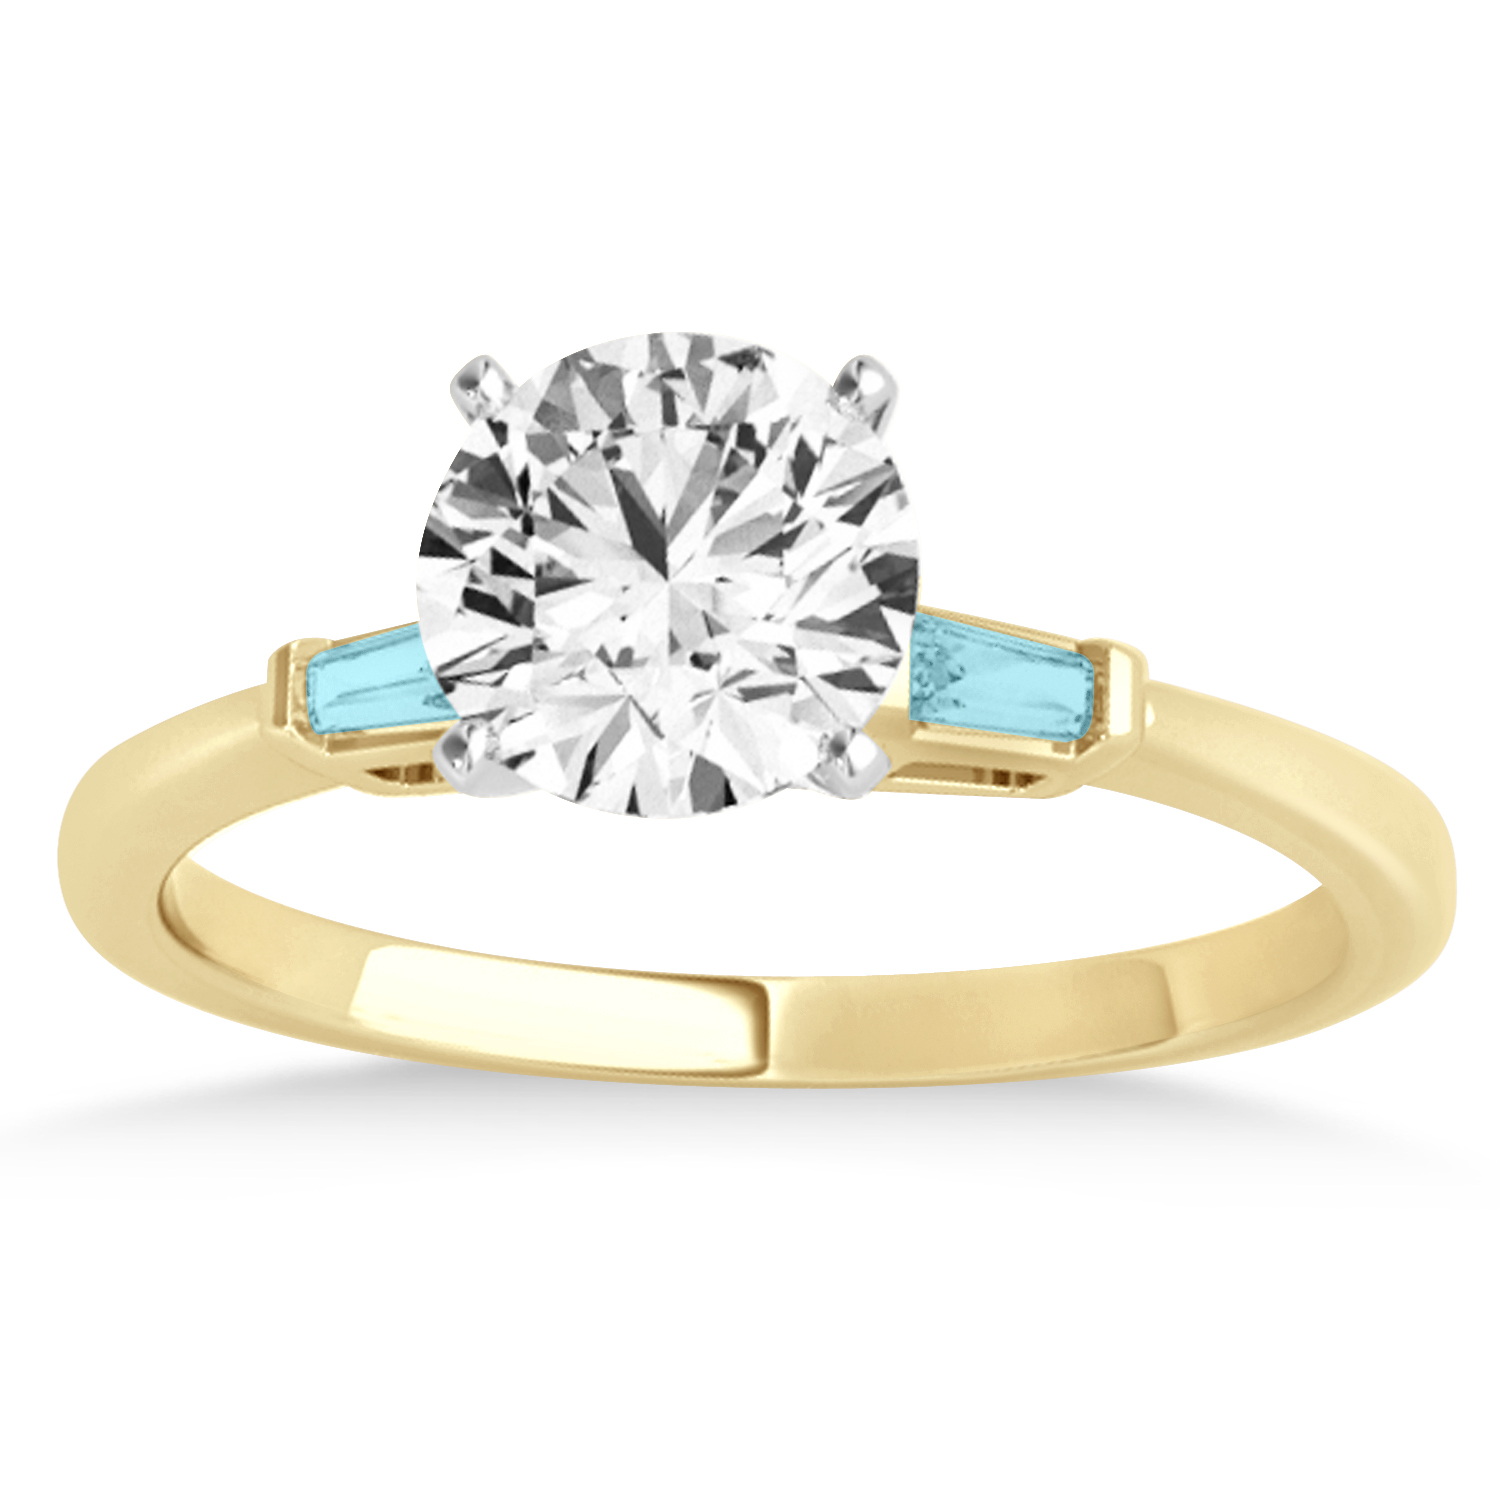 Tapered Baguette 3-Stone Aquamarine Engagement Ring 18k Yellow Gold (0.10ct)